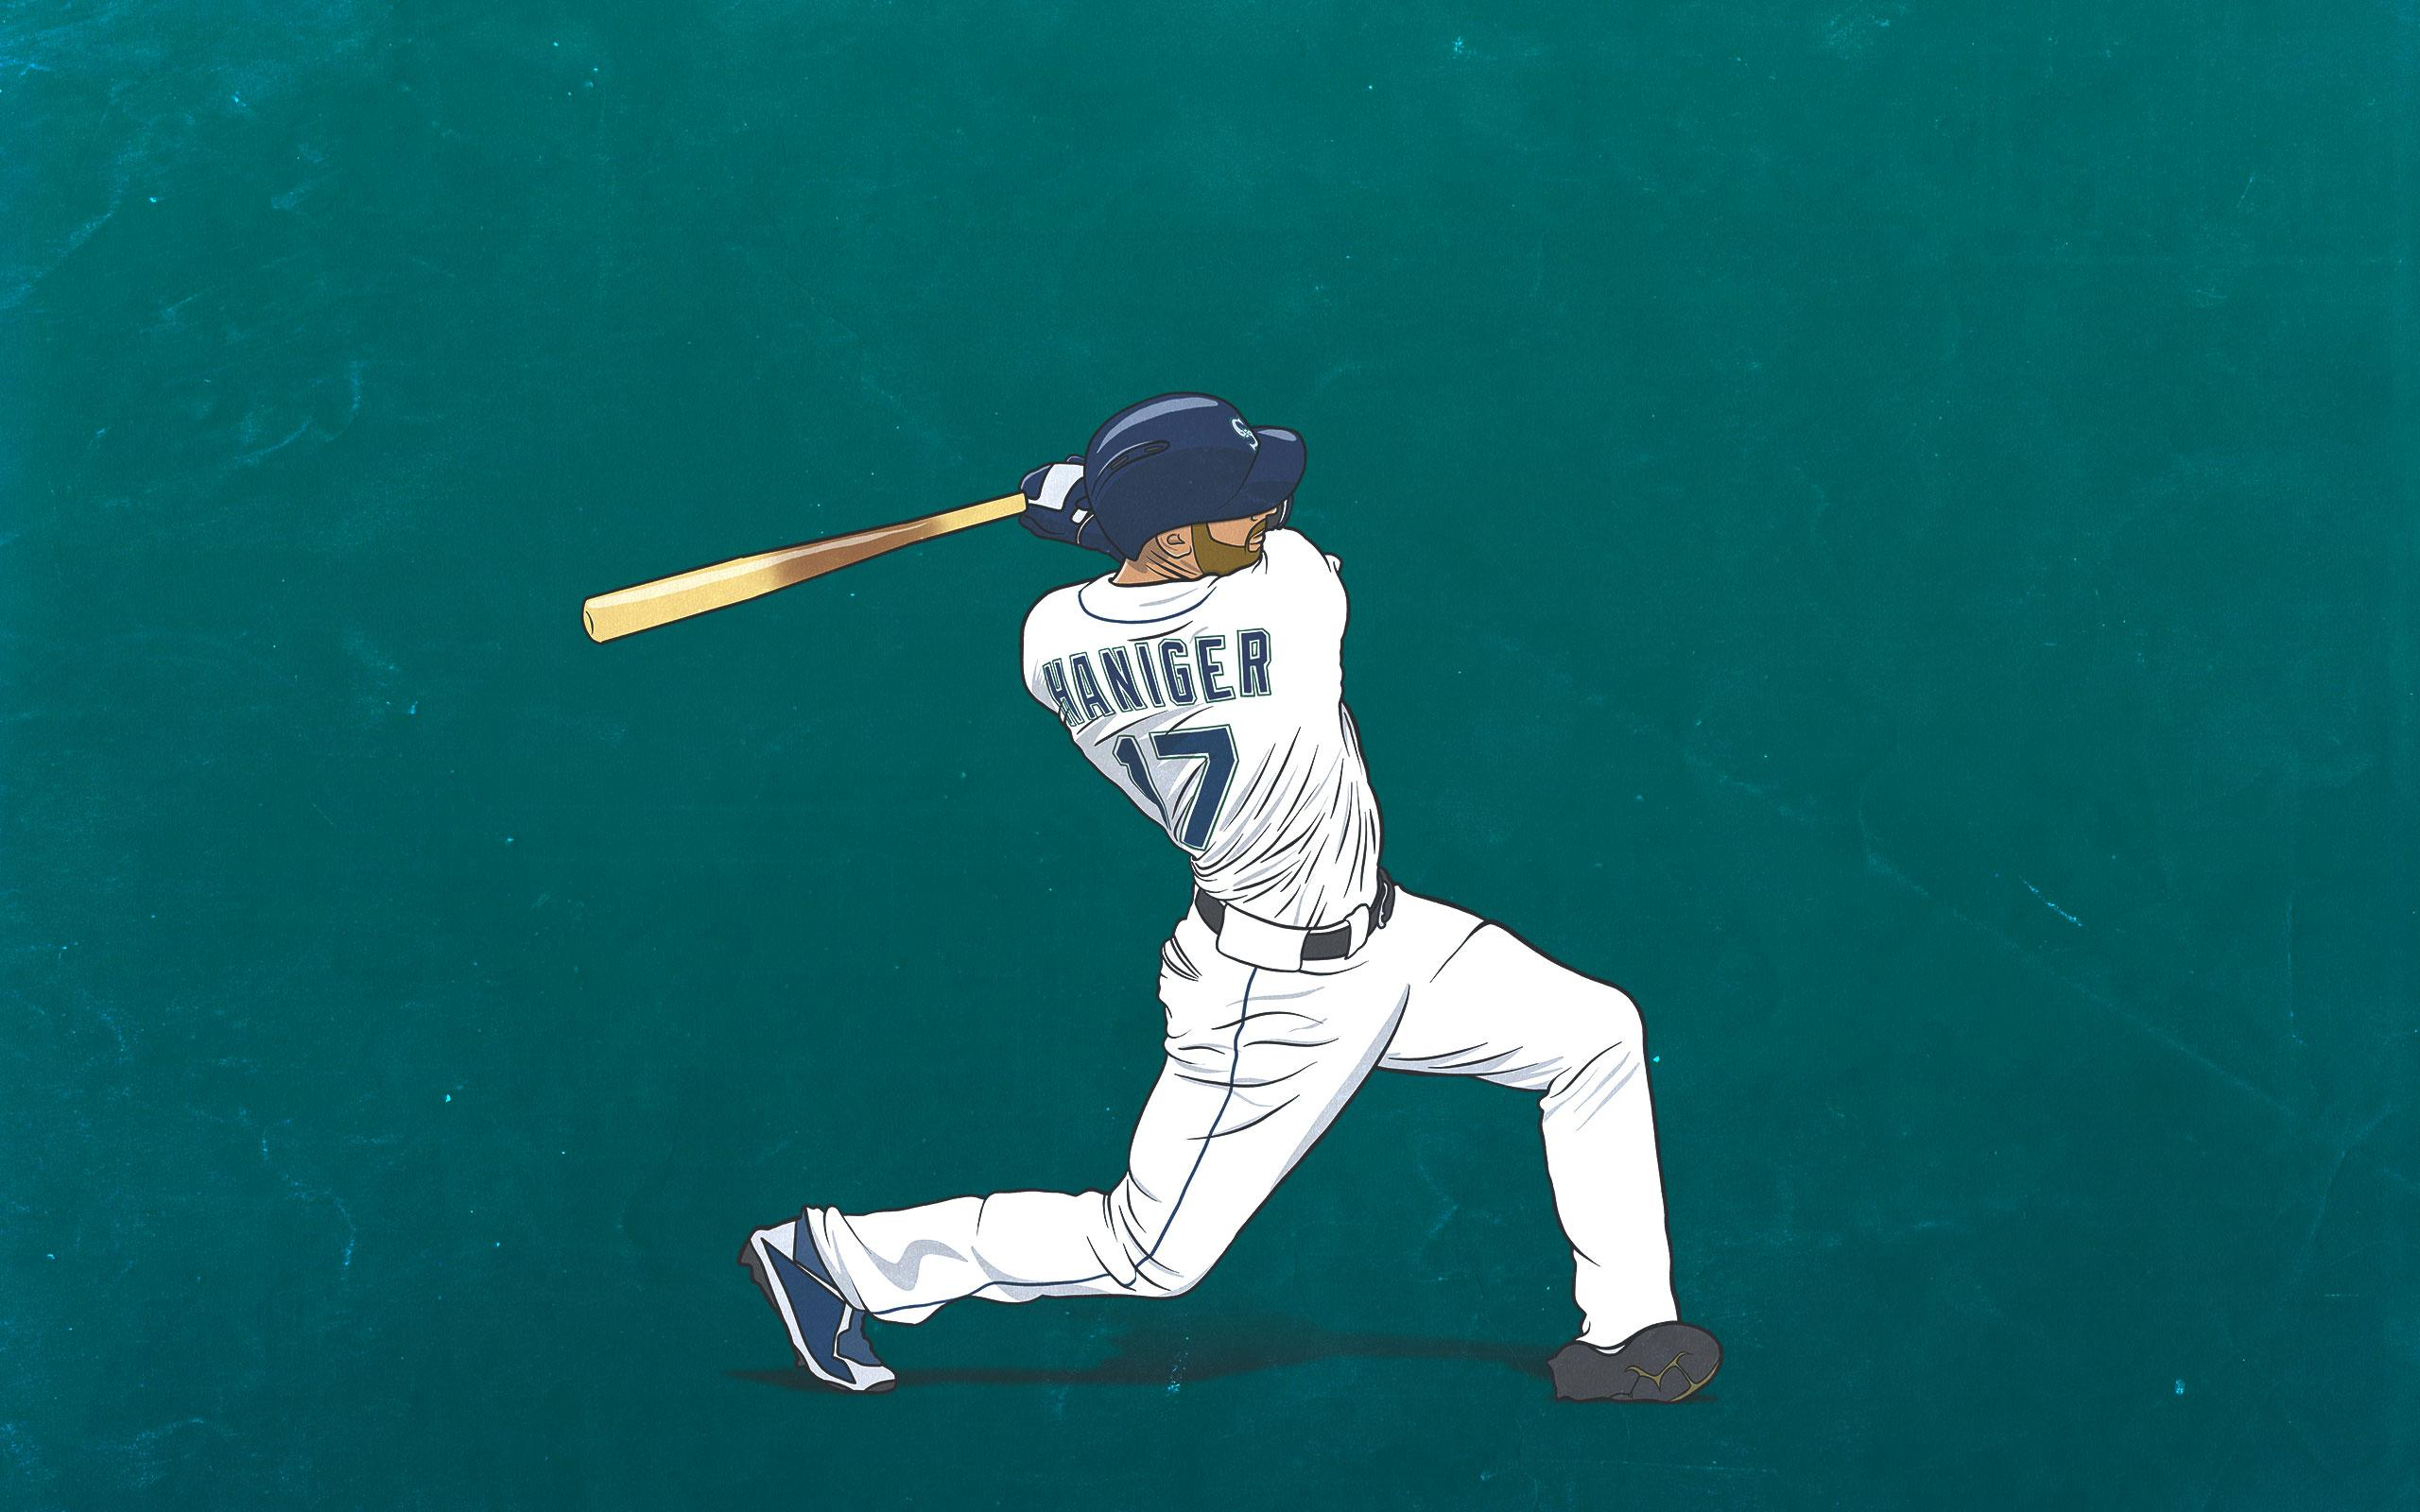 Mariners Players Wallpapers